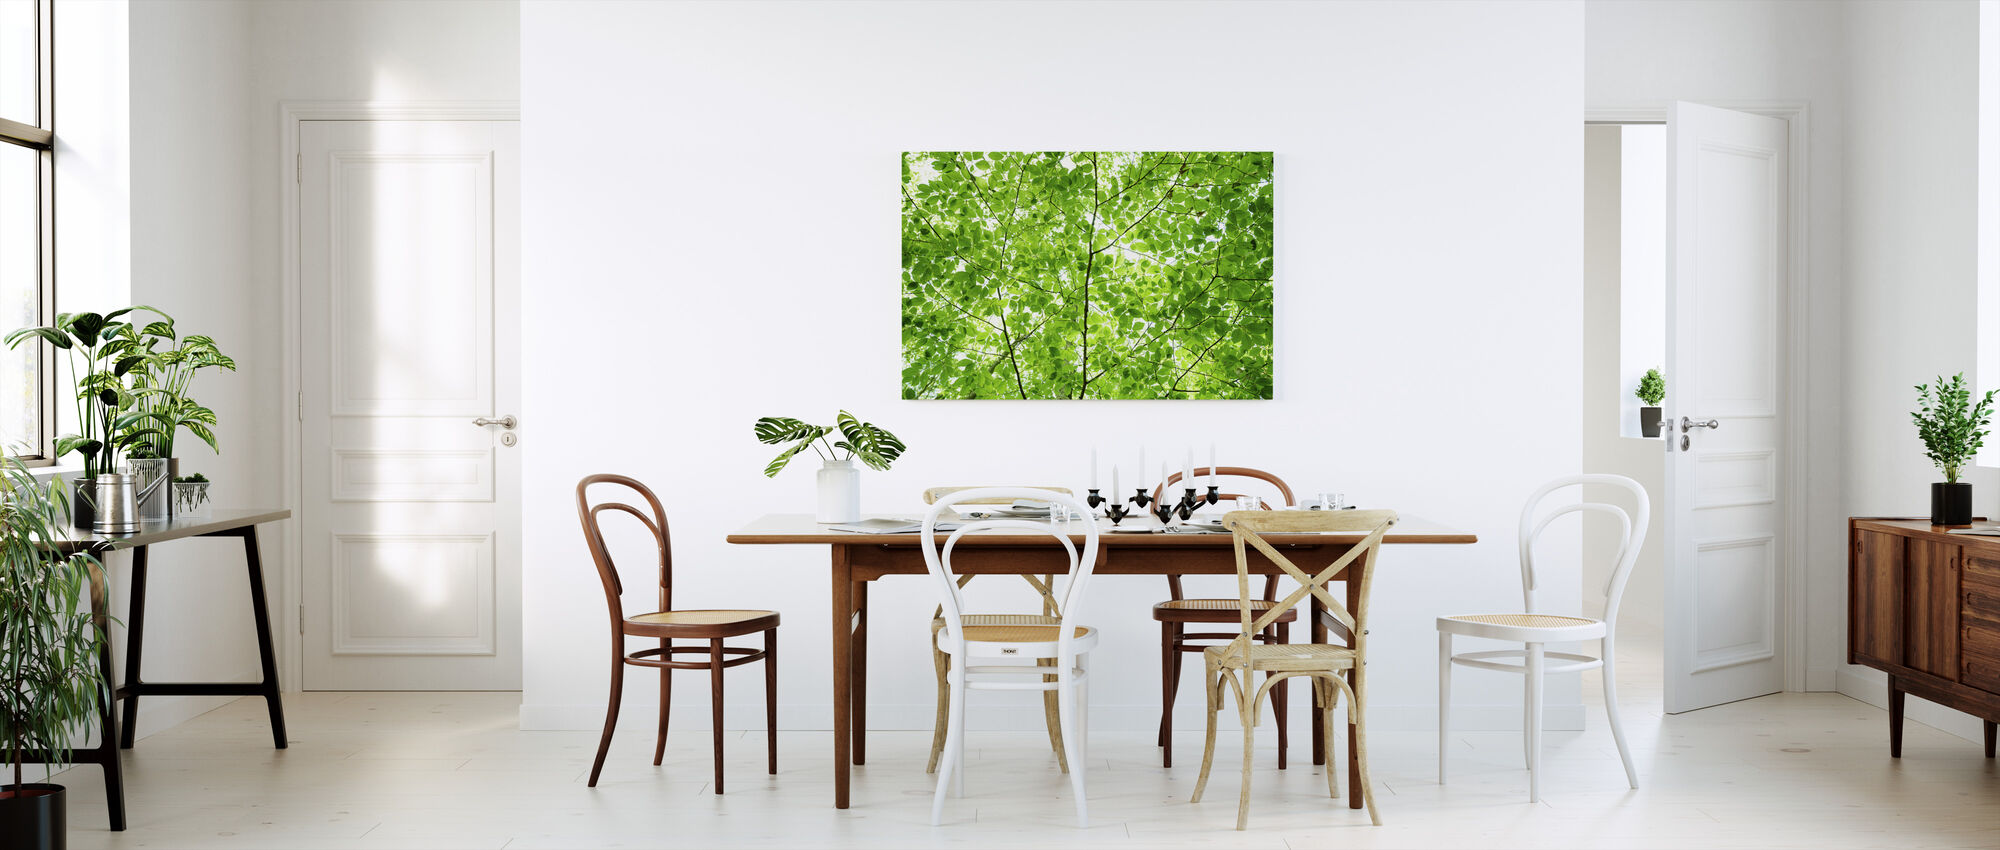 Wall of Fresh Leaves - Canvas print - Kitchen